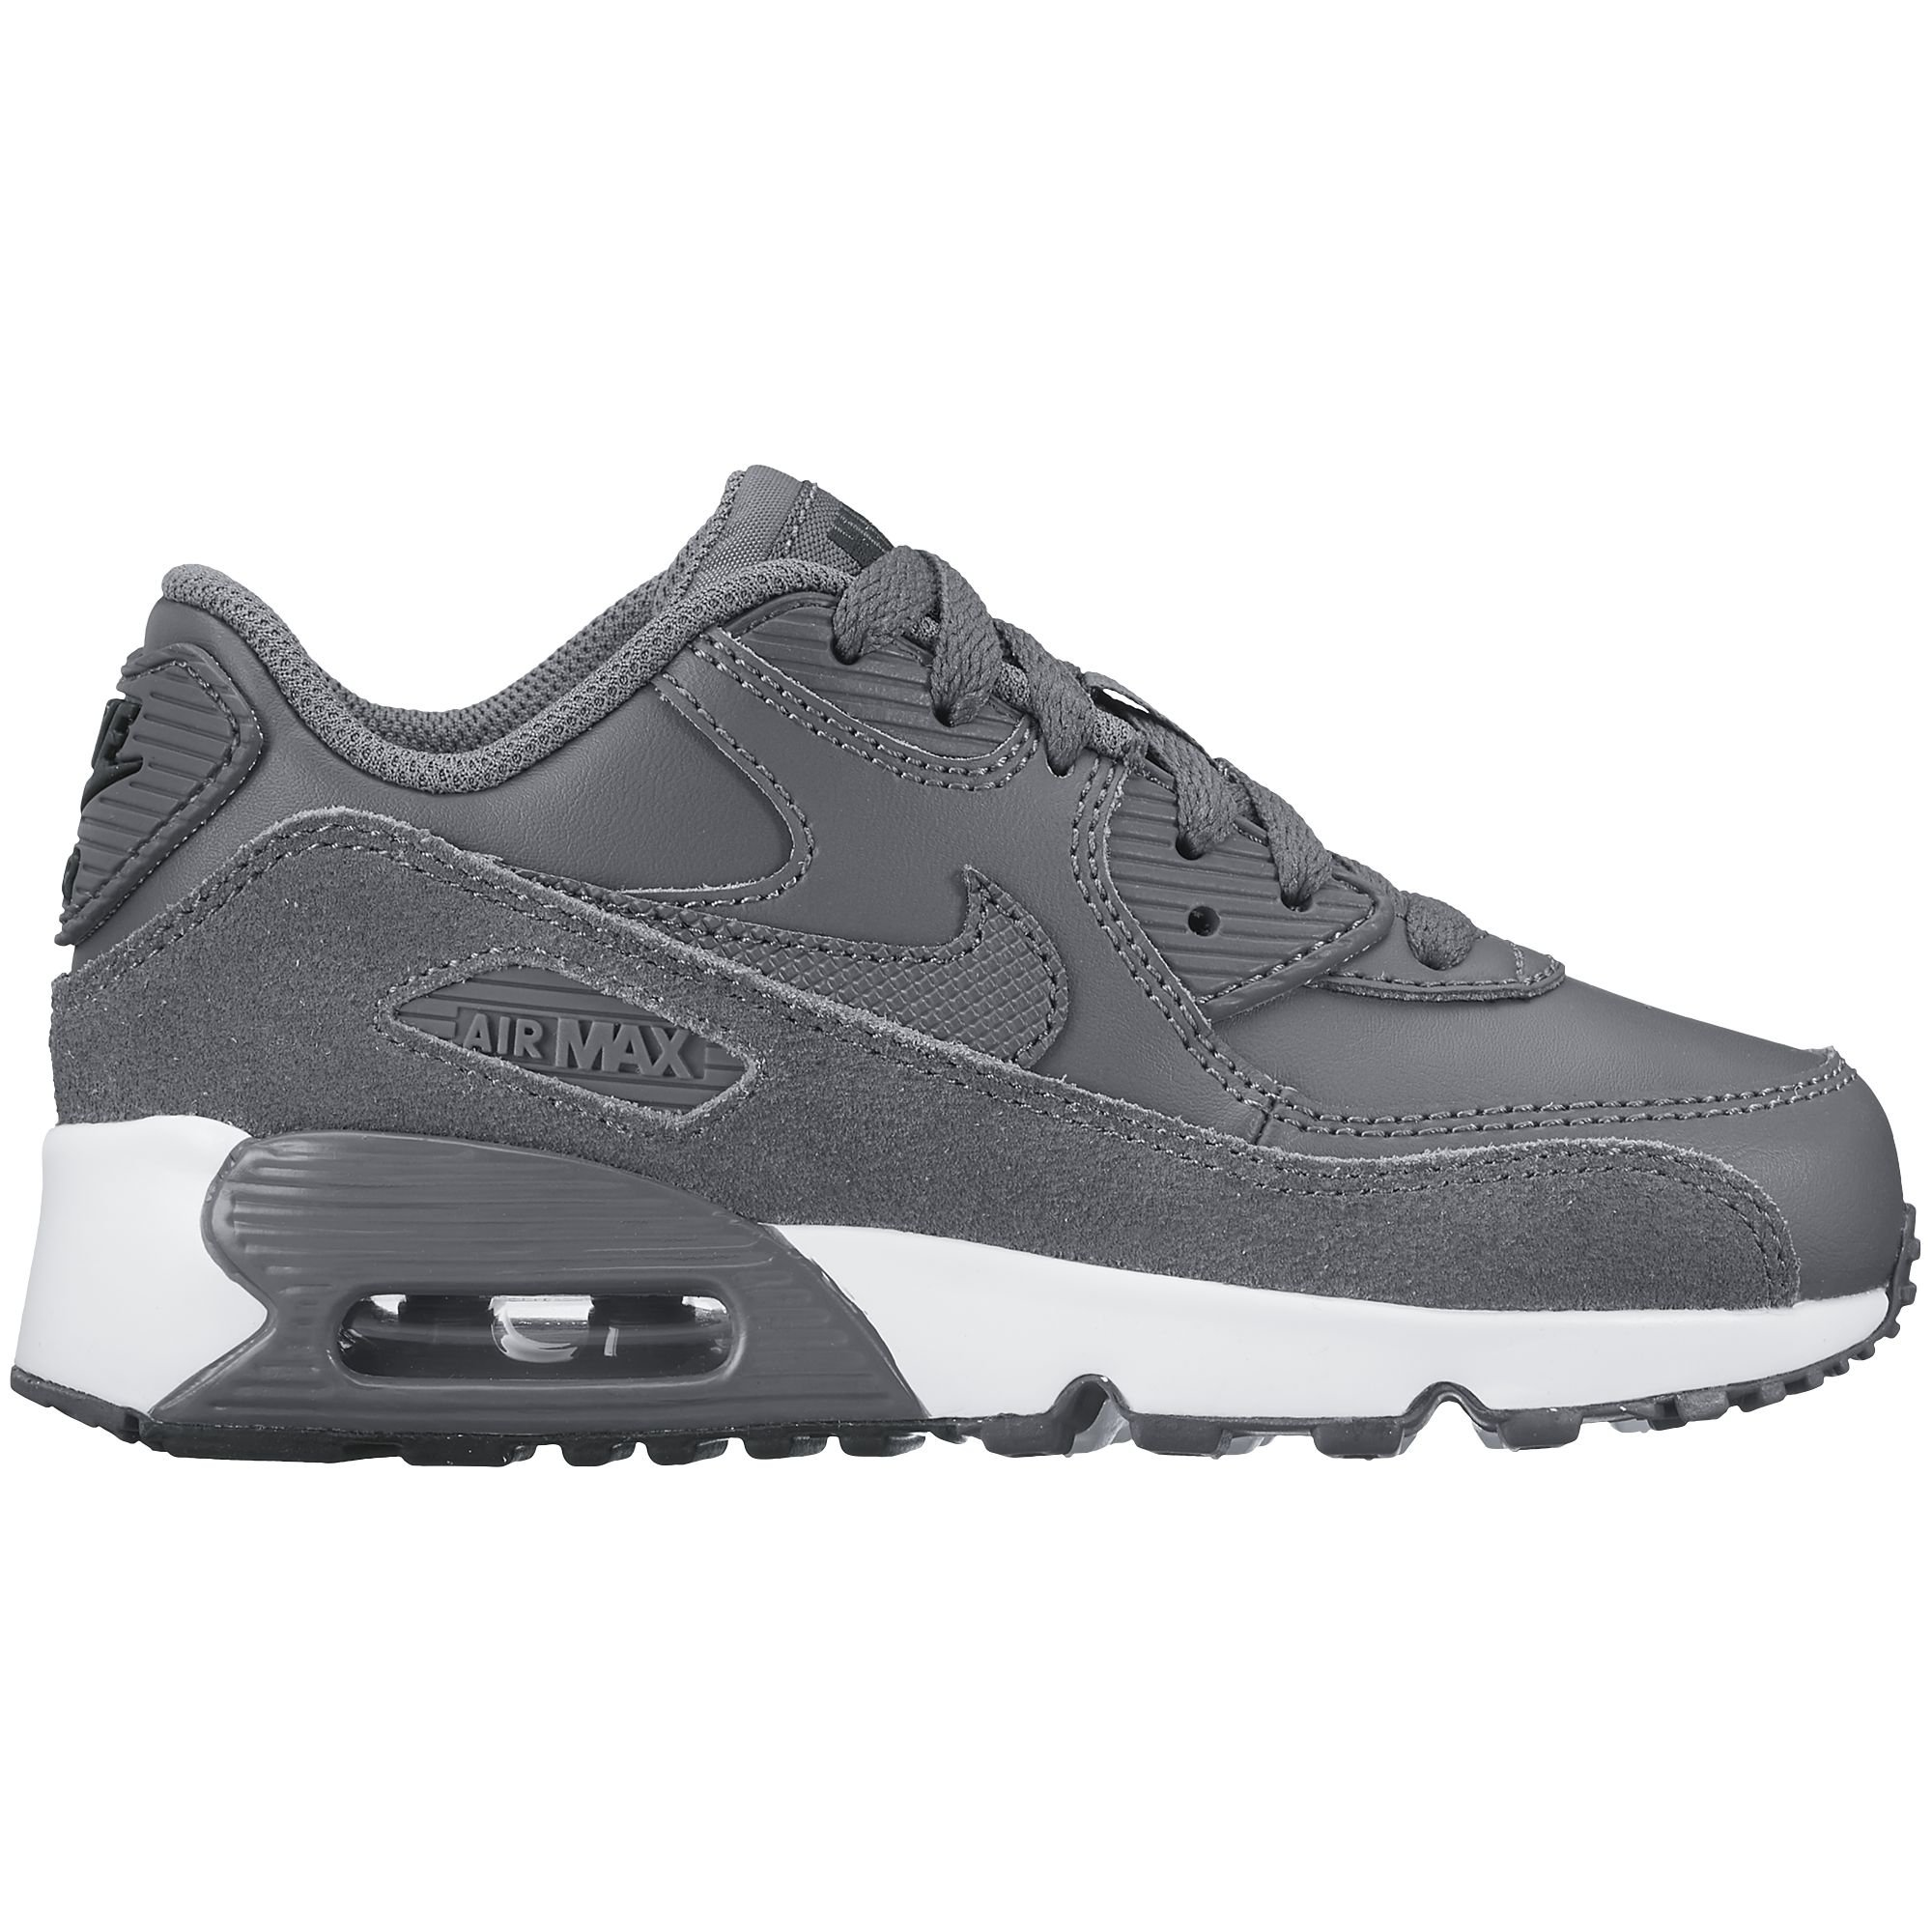 42a4891ea611 Galleon - NIKE Air Max 90 LTR Little Kids Style   833414-023 Size   11 Y US